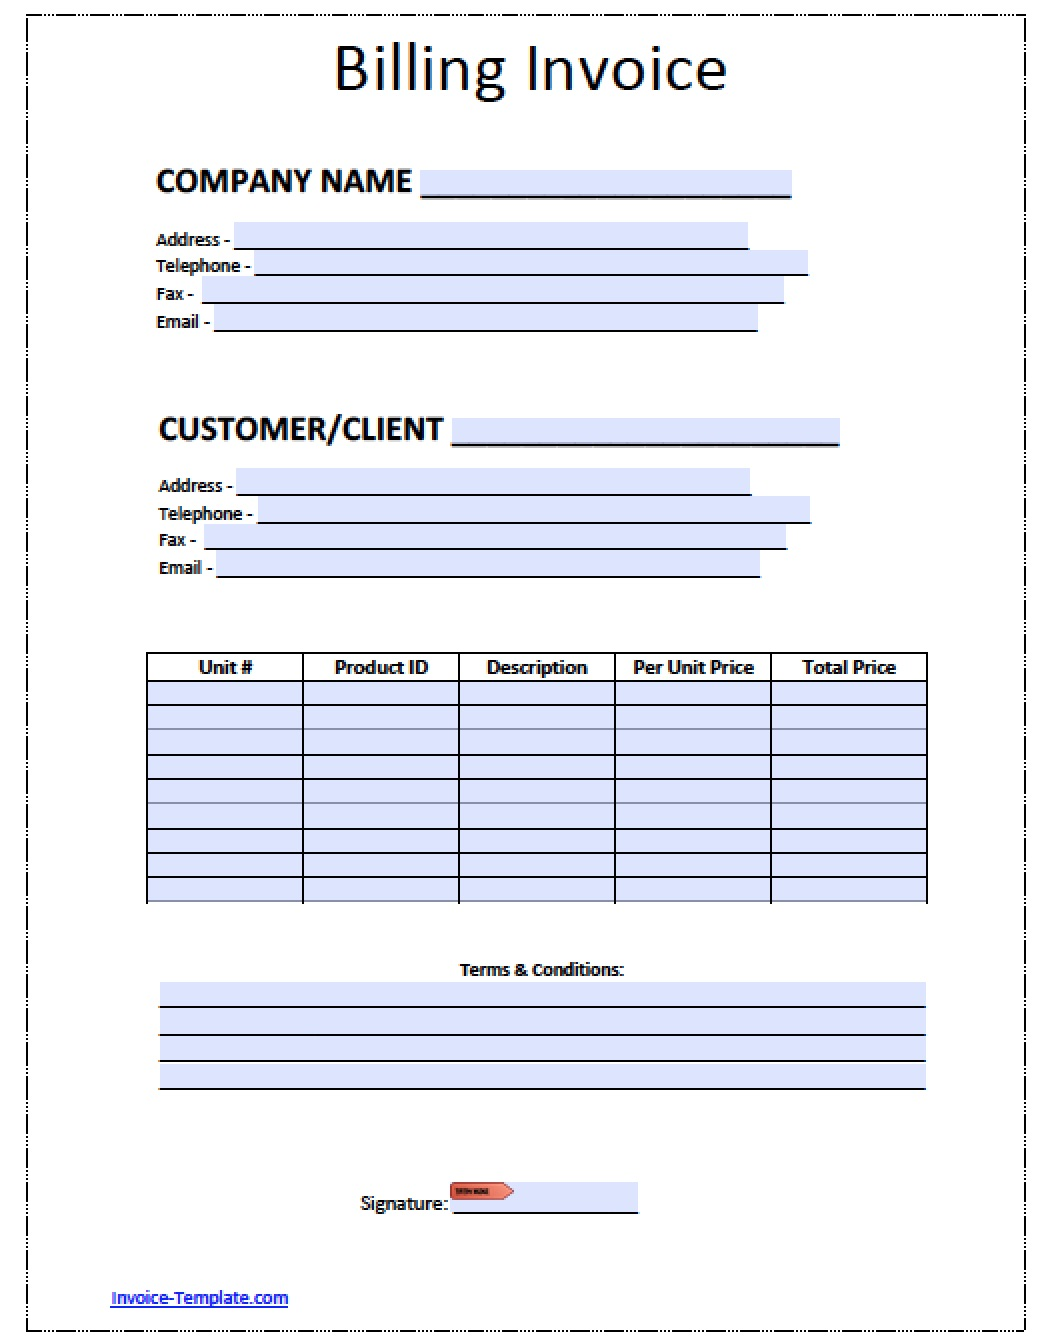 Free Billing Invoice Template Excel PDF Word Doc - How to make an invoice on microsoft word for service business